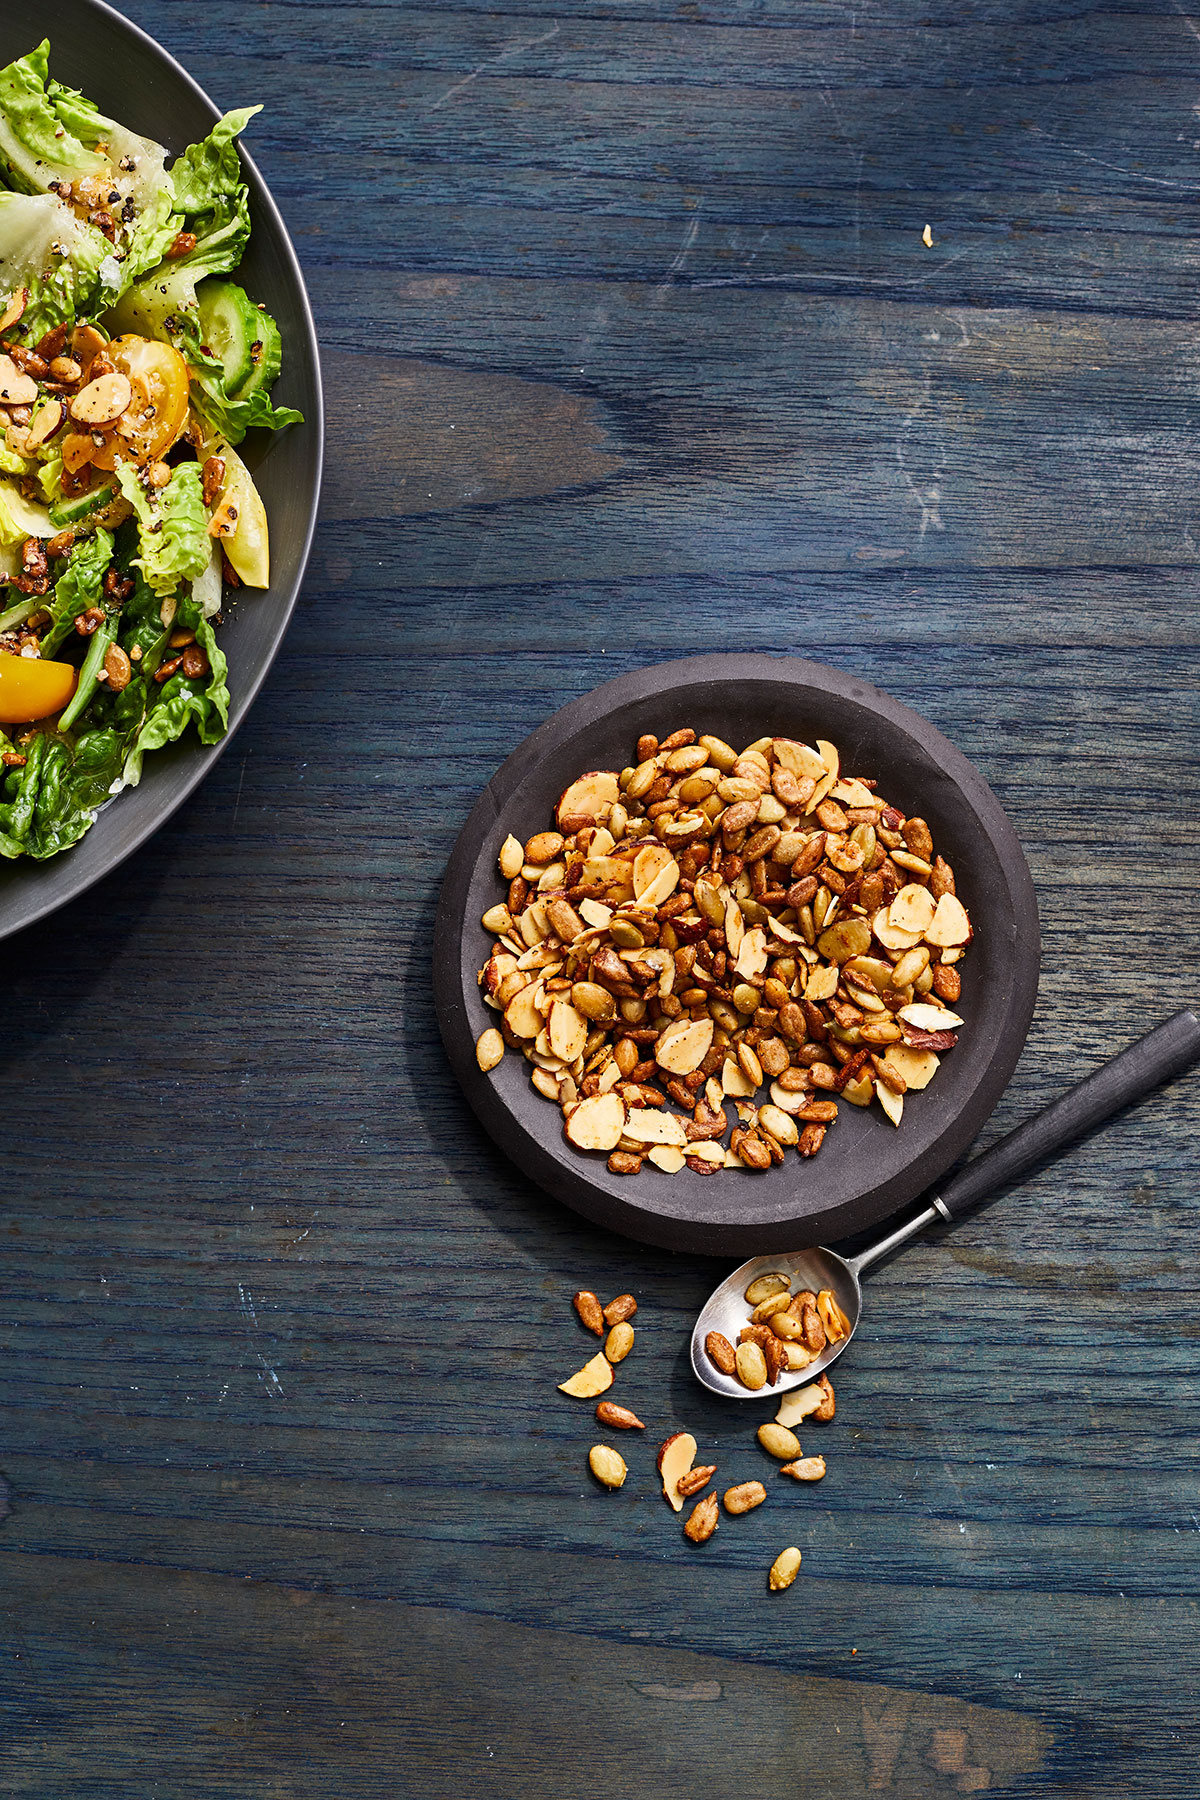 Spicy Almond-and-Seed Salad Topper